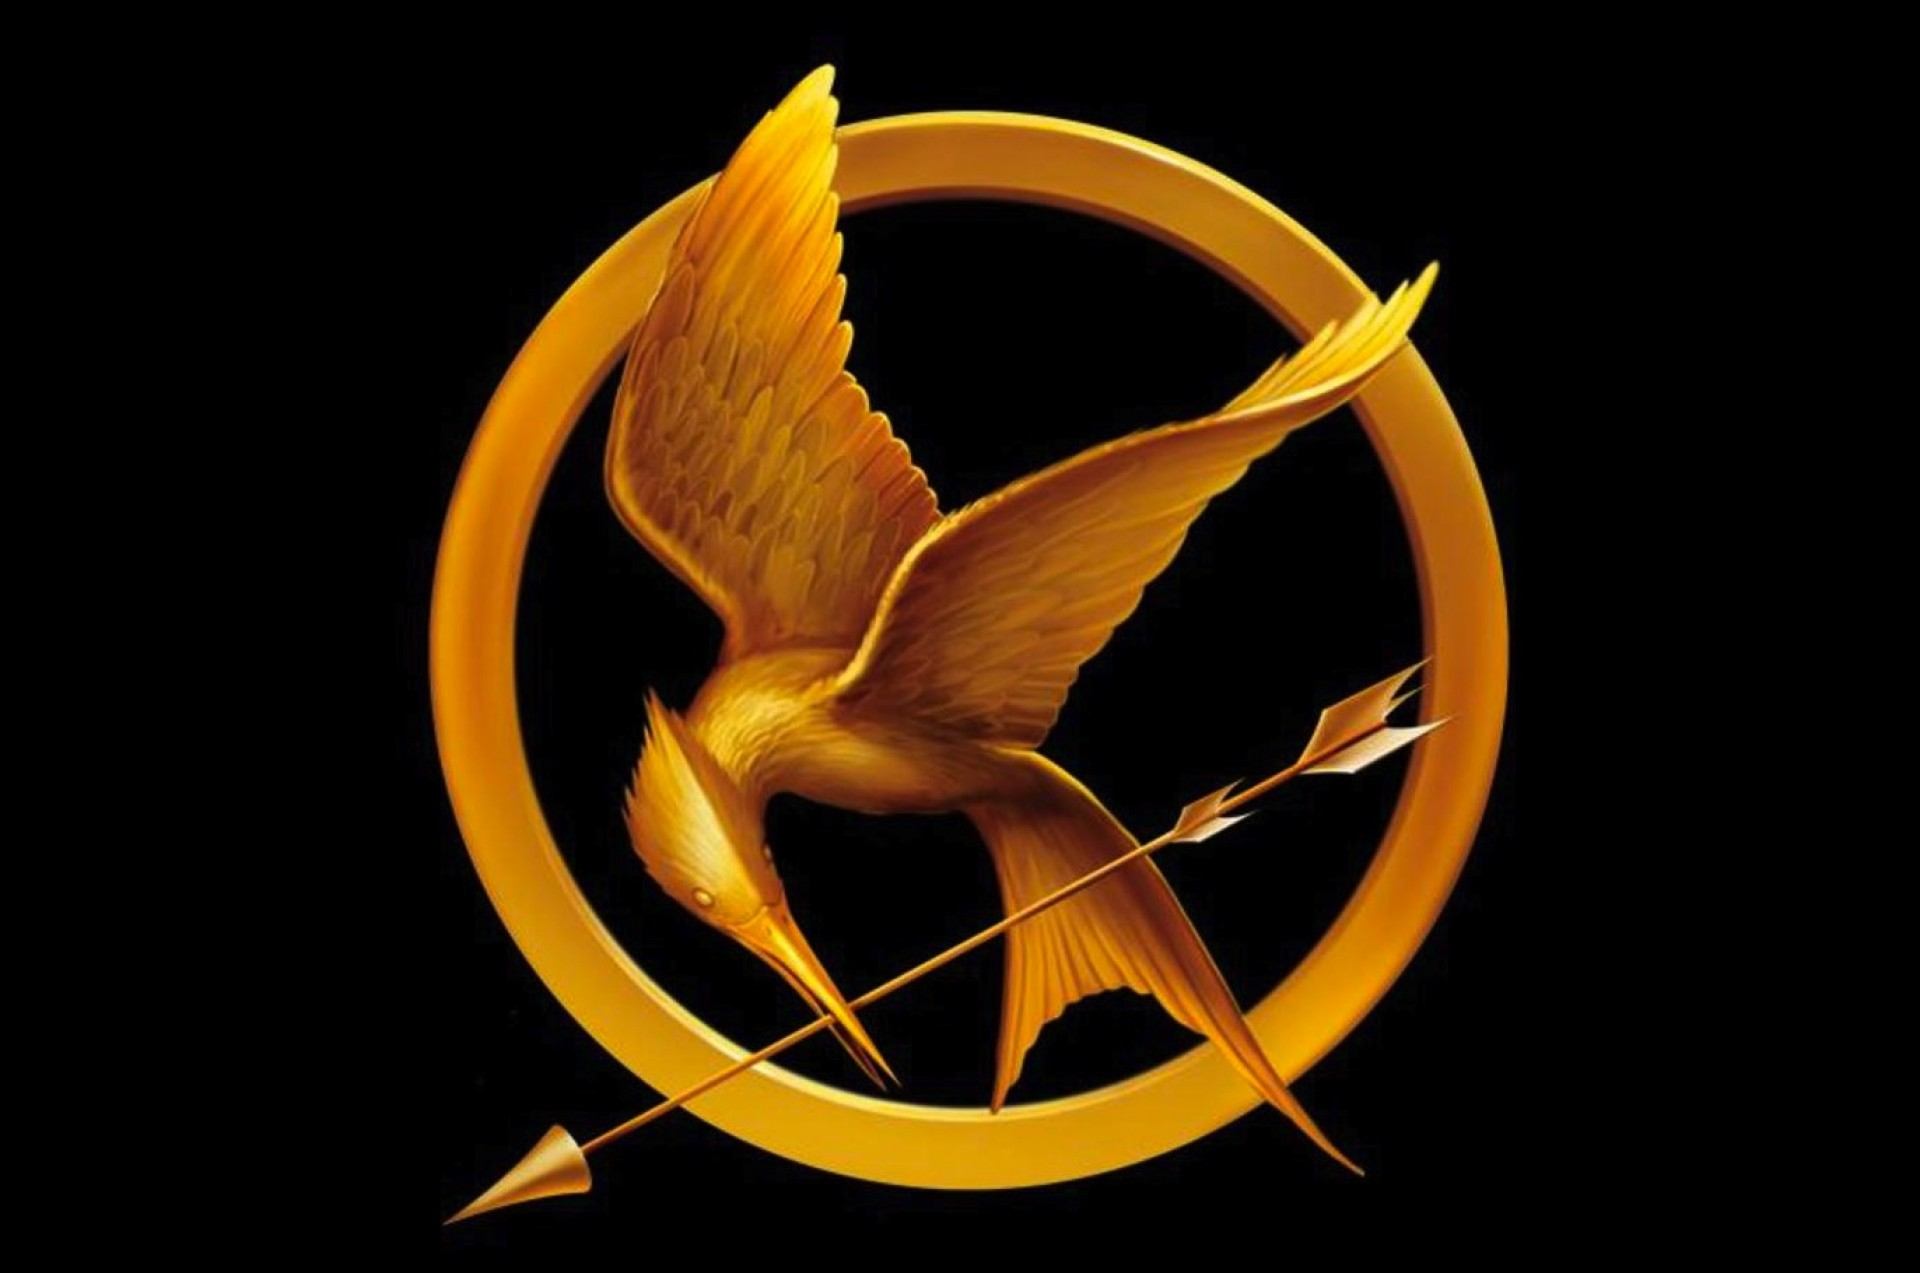 010 Essay Example The Hunger Games Mockingjay Pin 1920x1200 Symbol11 Book Imposing Review 1920